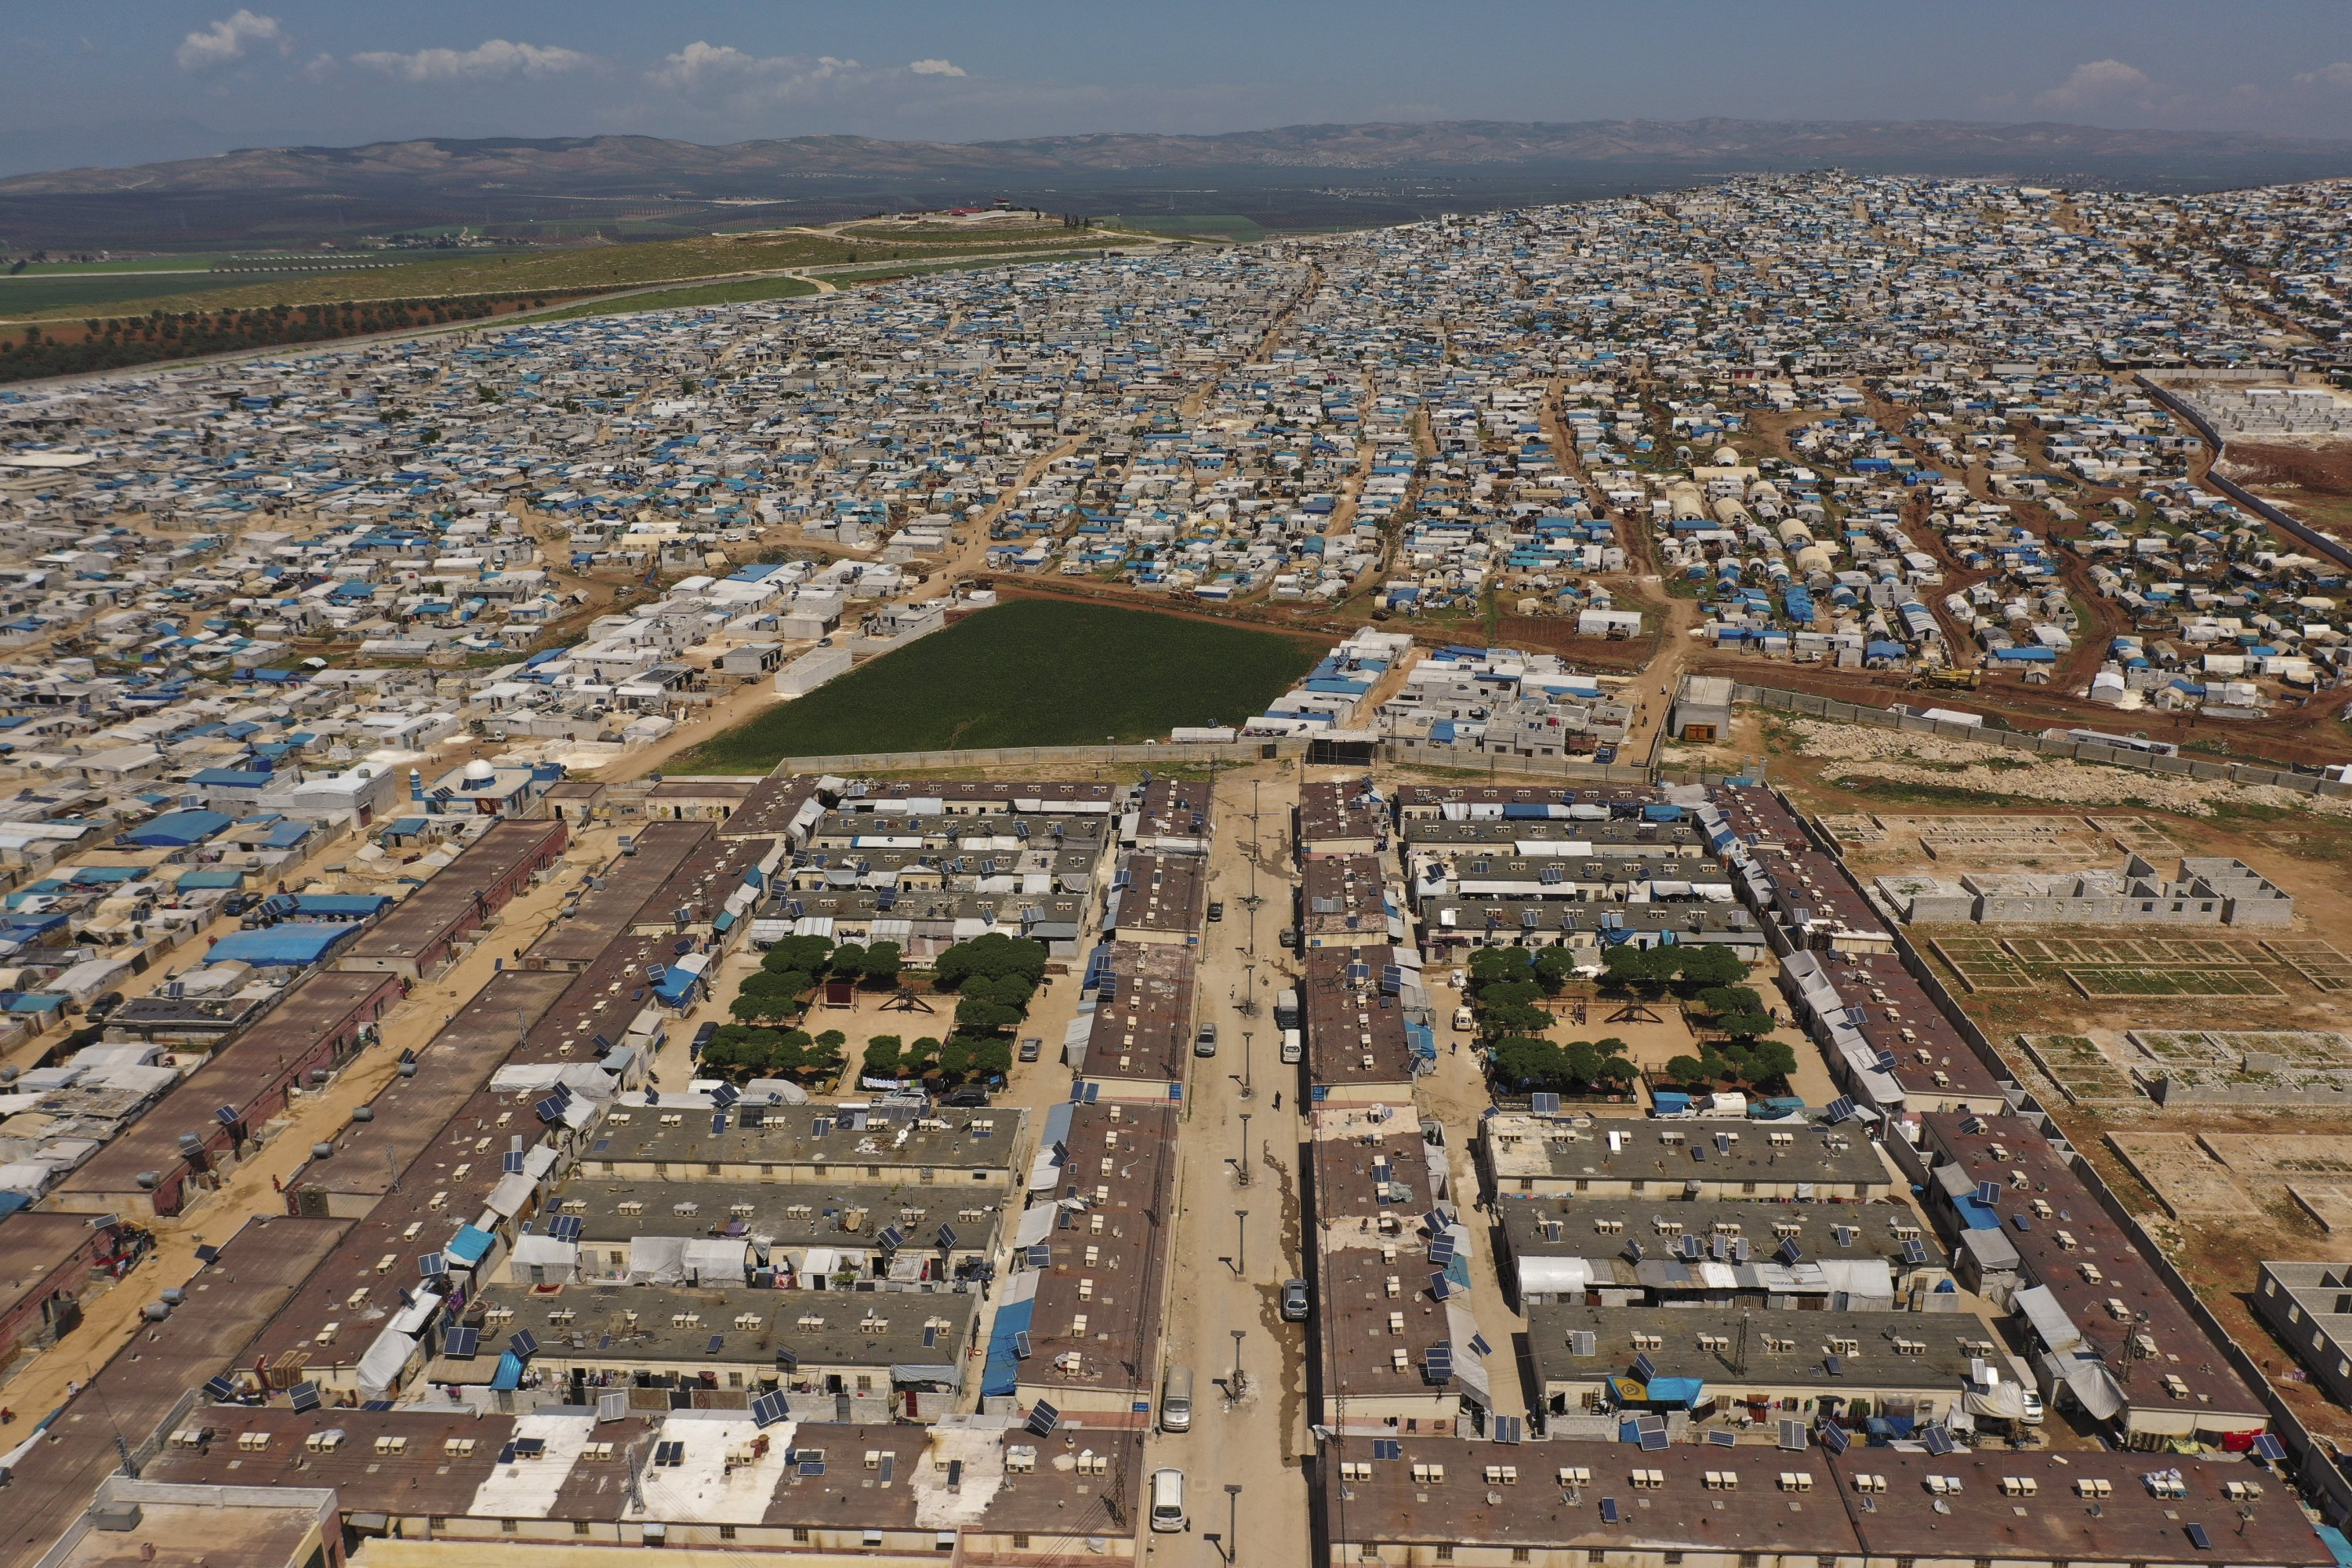 A valley holds a large refugee camp on the Syrian side of the border with Turkey, near the town of Atma, in Idlib province, Syria, April 19, 2020. (AP Photo)